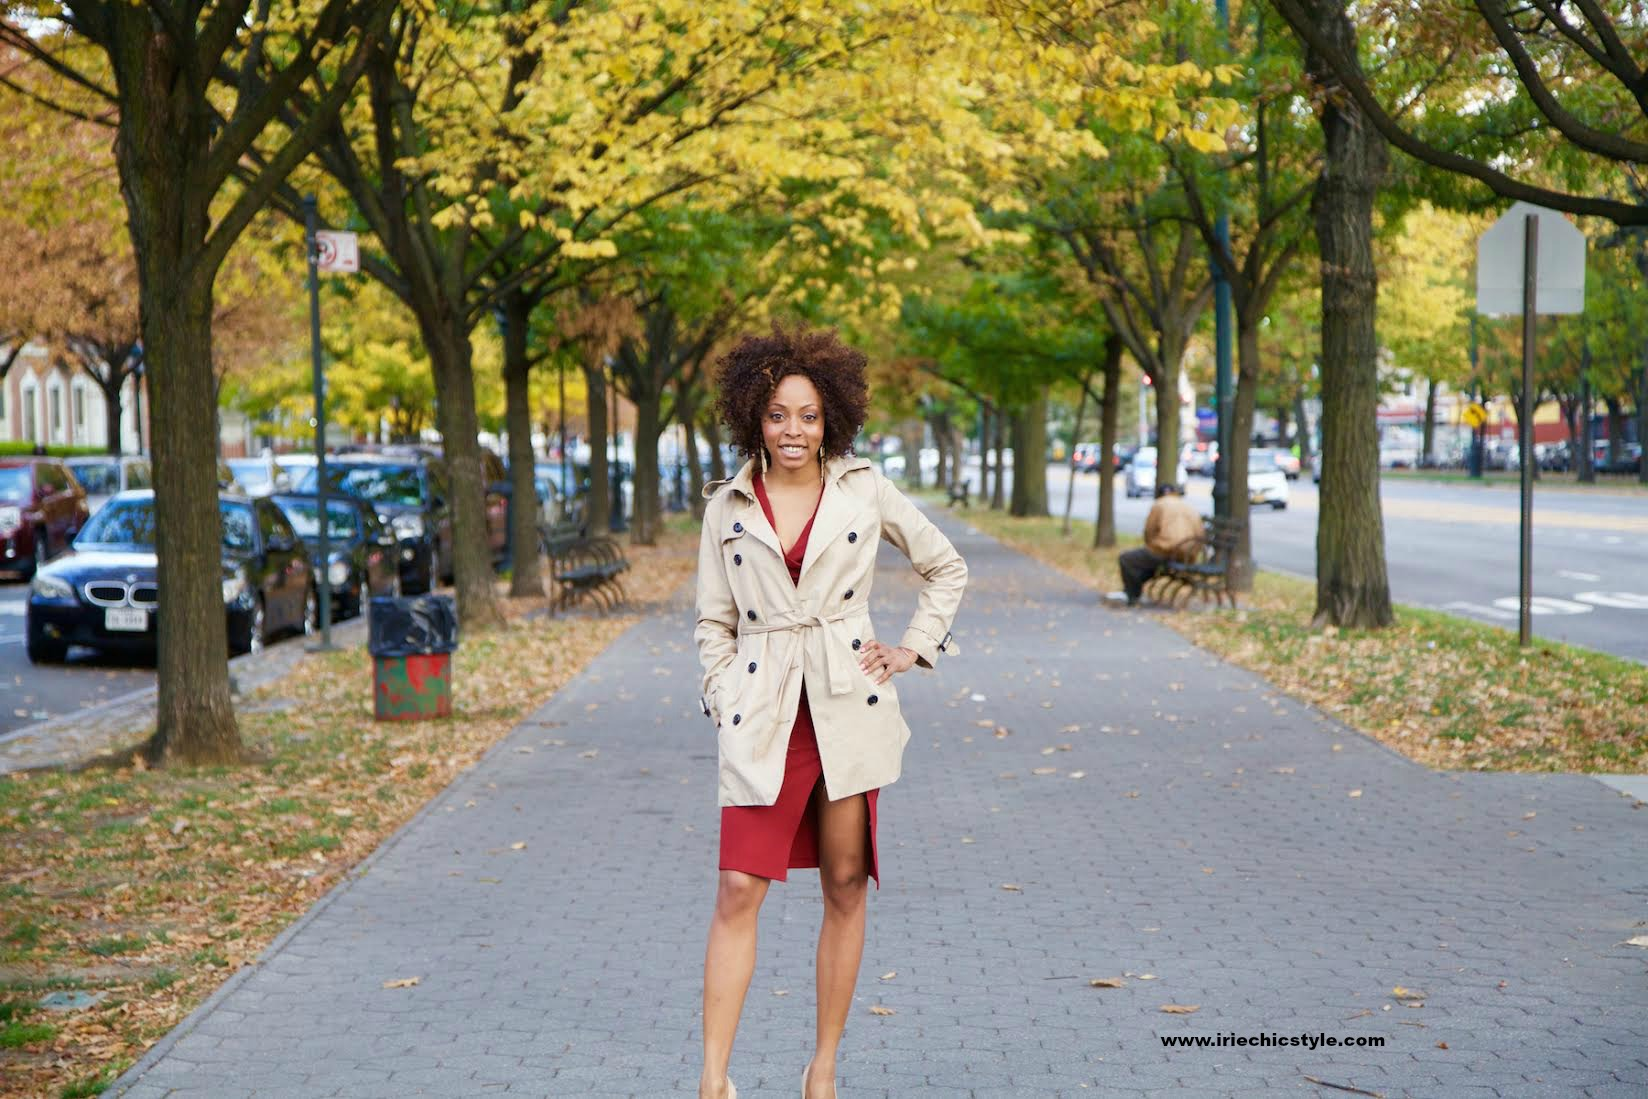 fall fashion - trench coat and dress